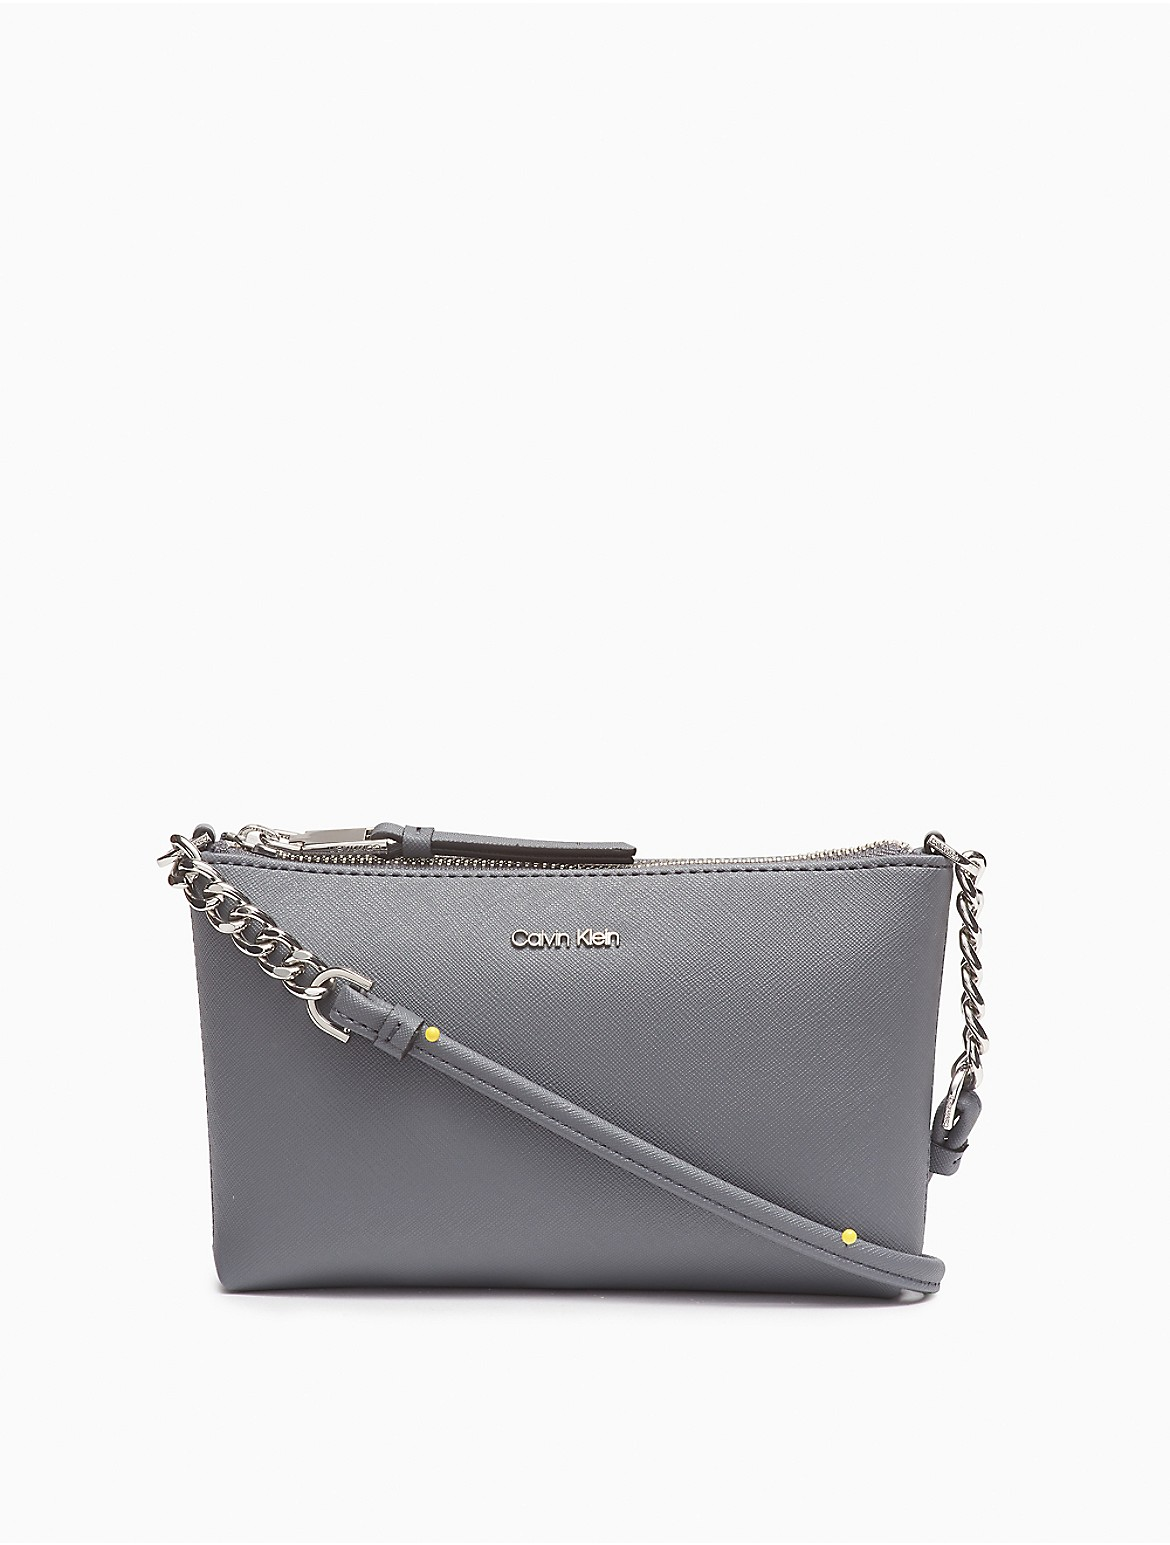 Saffiano Leather Chainlink Crossbody Bag